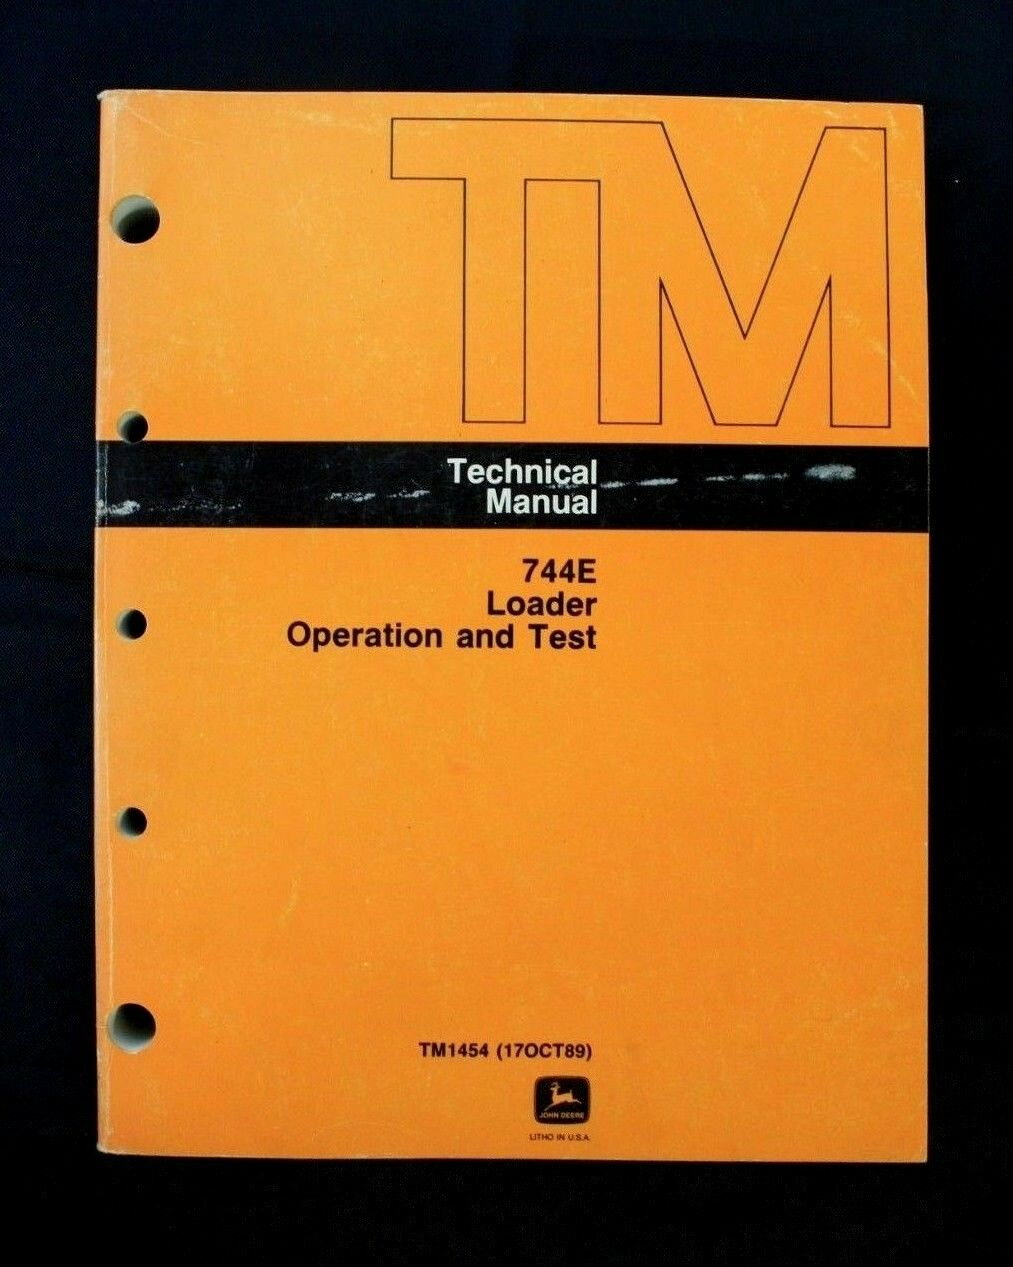 John Deere 744E Loader Operation & Test Technical Manual TM1454 (Oct 1989)  1 of 2Only 1 available ...